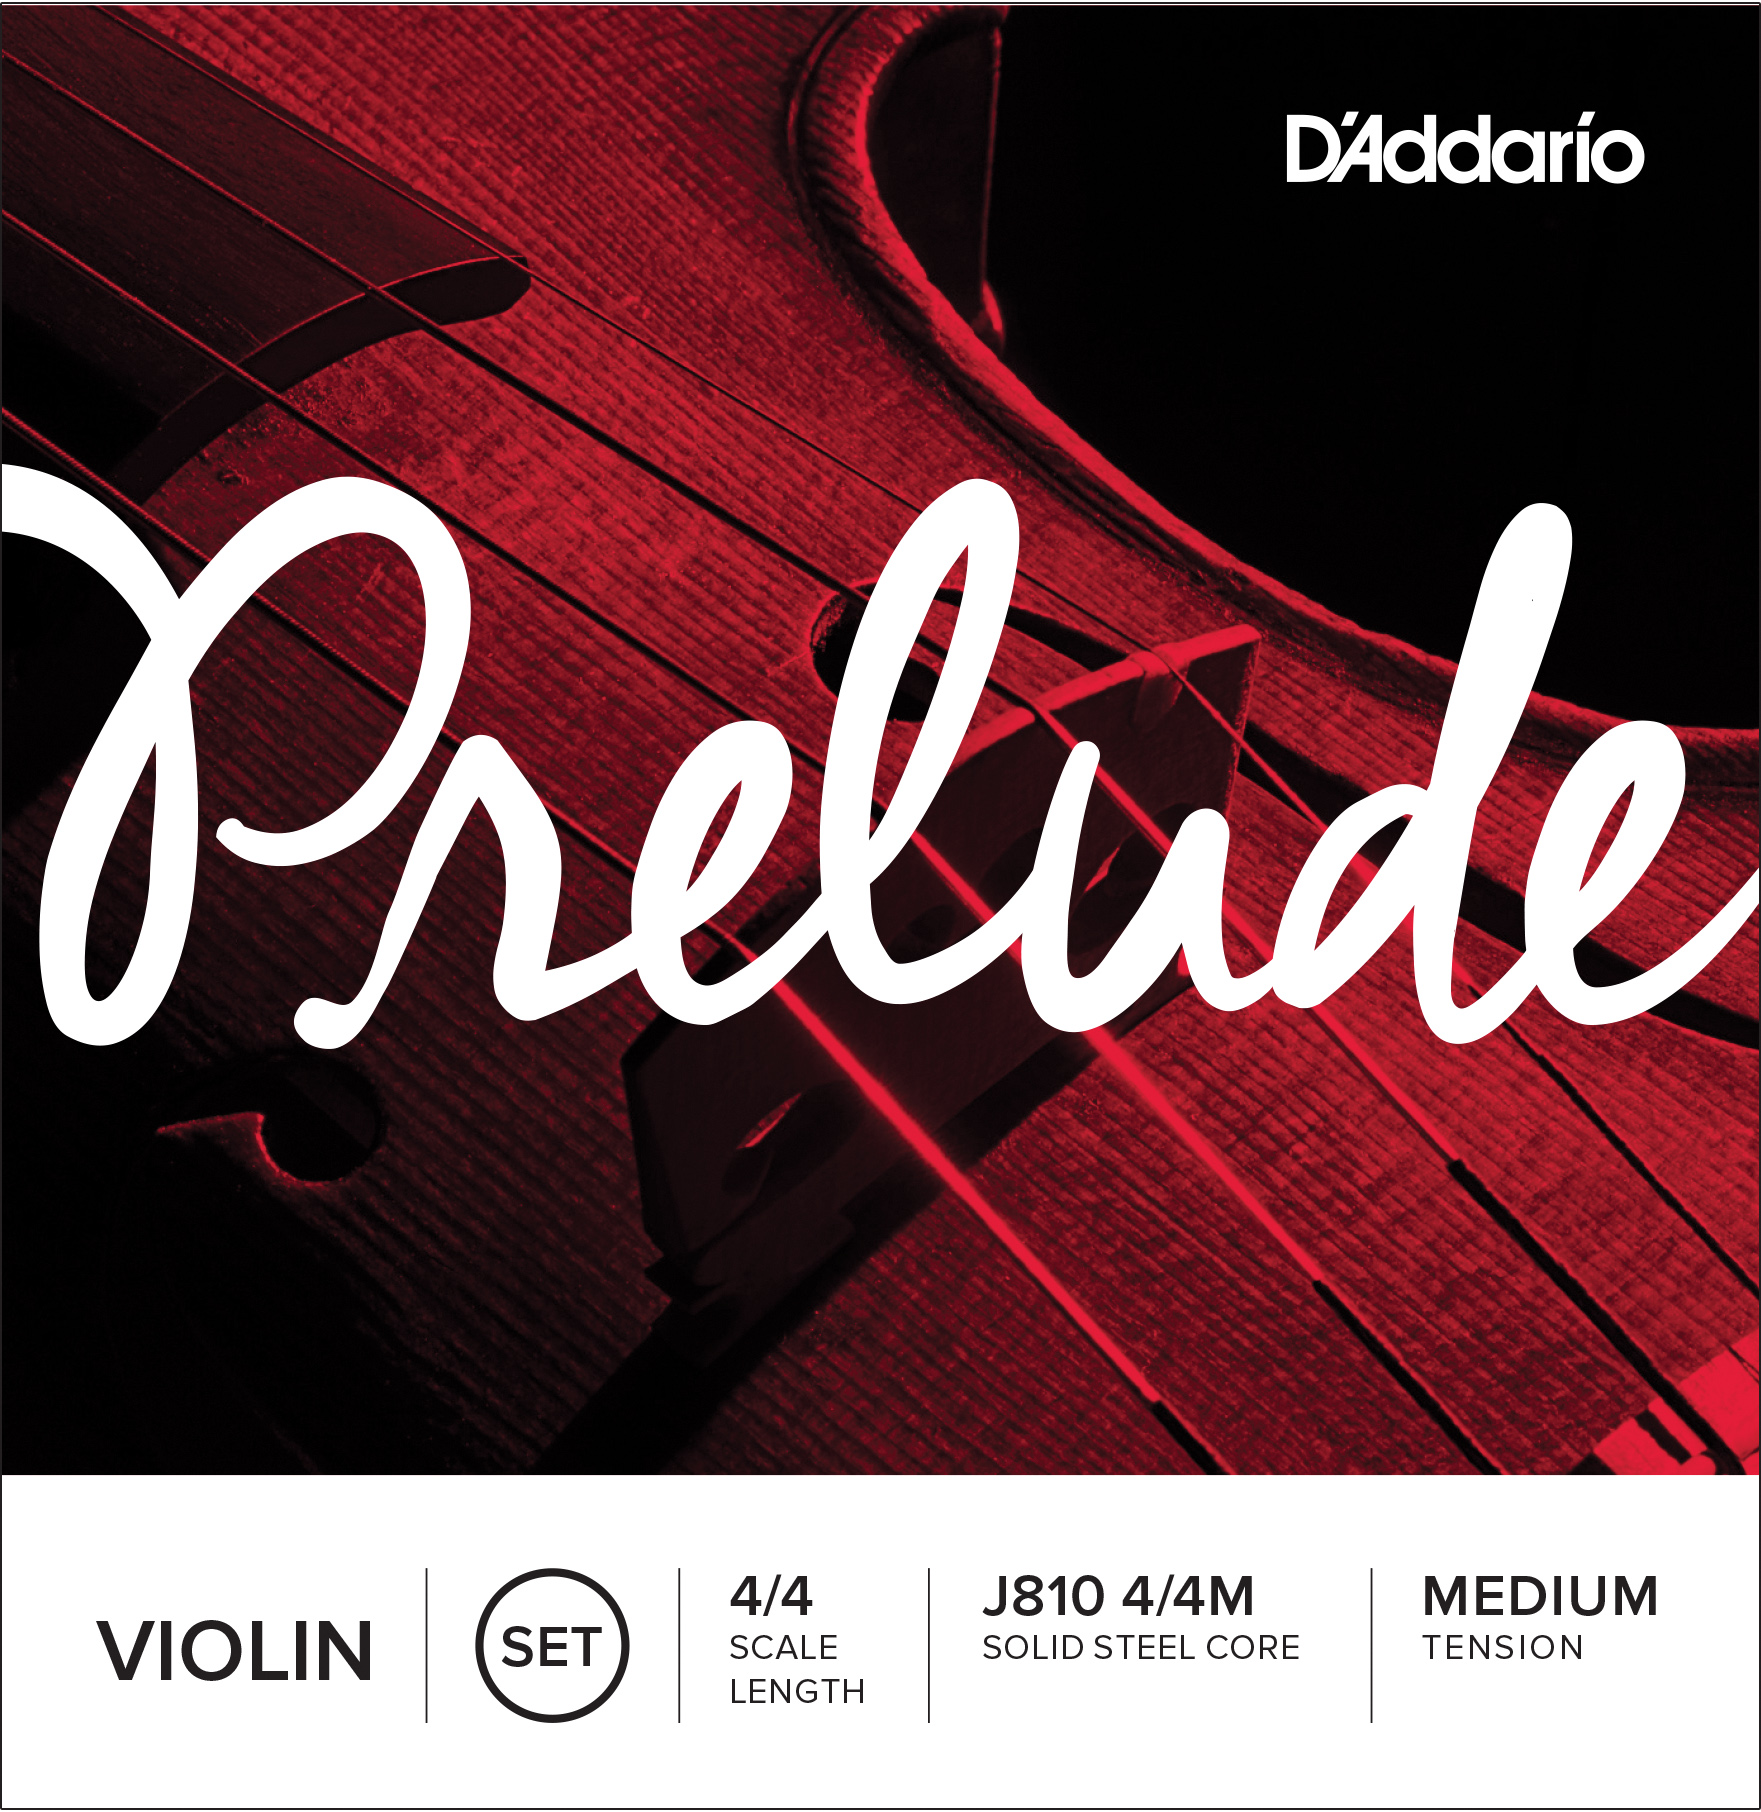 D'Addario Prelude Violin String Set, 4/4 Scale, Medium Tension J810 4/4M